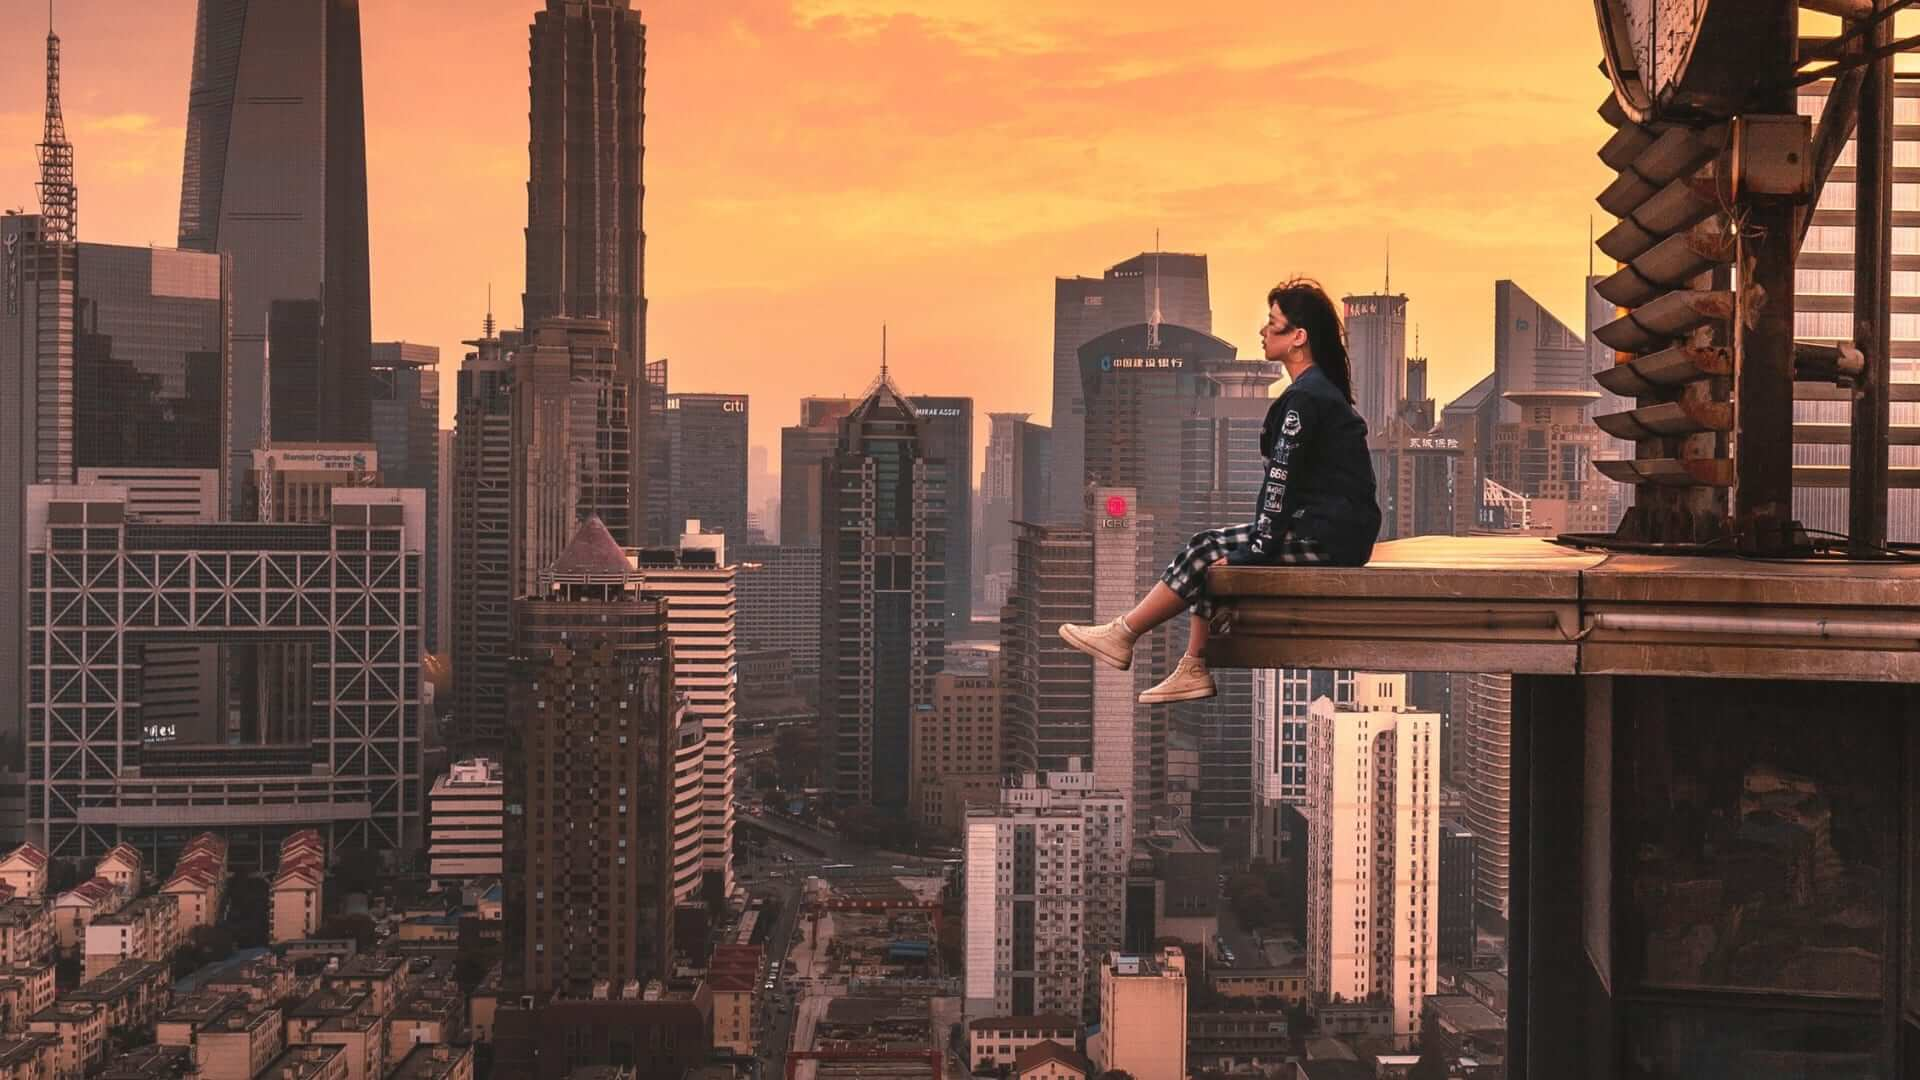 A girl is sitting on a protrusion of a building looking over the city during sunset in Shanghai.